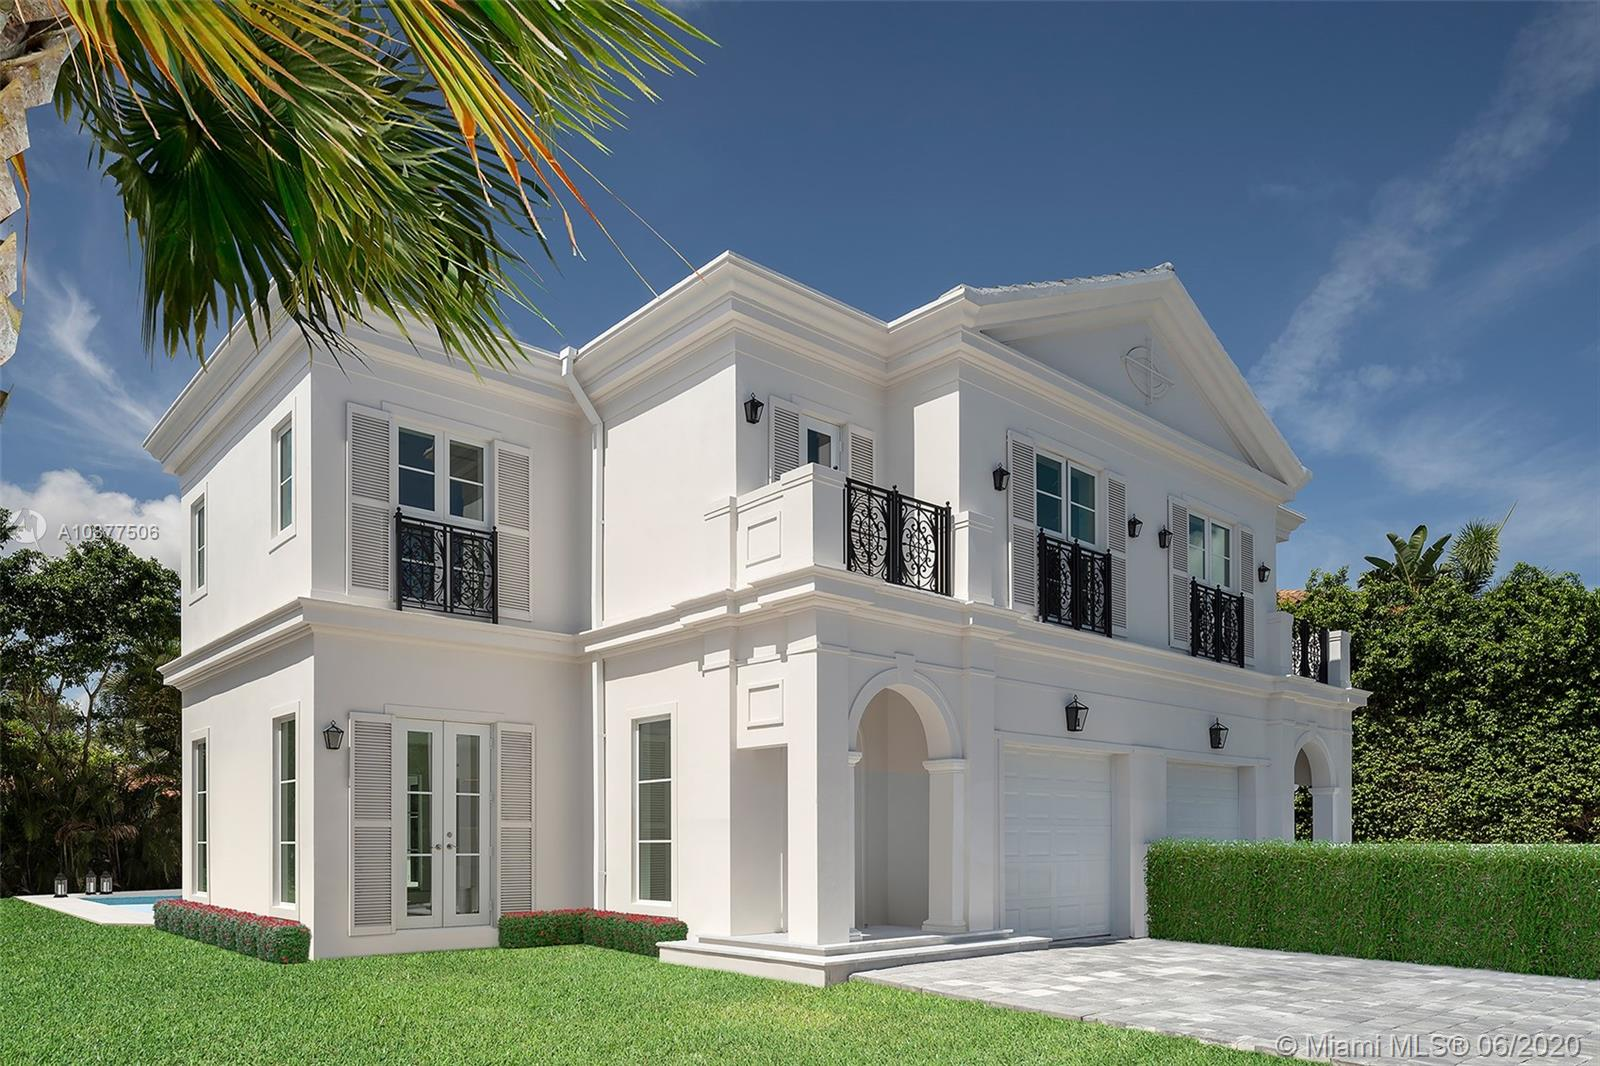 BHHS EWM Realty is proud to present Villa Blanc – a collection of 4 magnificent, newly-constructed townhomes in central Coral Gables.THIS LISTING IS AN EXLUSIVE OPPORTUNITY FOR A BUYER TO PURCHASE ONE UNIT FROM THE 4-UNIT PORTFOLIO. Built in 2019, each of these elegant 2-story townhomes feature spacious living areas, abundant natural light, high-end finishes, private outdoor patio, courtyard & pool. Interiors feature 3BR/3.5BA, gourmet kitchen, high-end appliances, custom white wood cabinets, master bedroom w/ den, master bath w/ separate tub & shower, marble floors & balcony. Laundry room. Villa Blanc's 4 townhome units may be purchased as a portfolio, or in pairs (MLS #A10872863 & MLS #A10872828). Units are leased on short-term basis; please don't disturb Tenants.